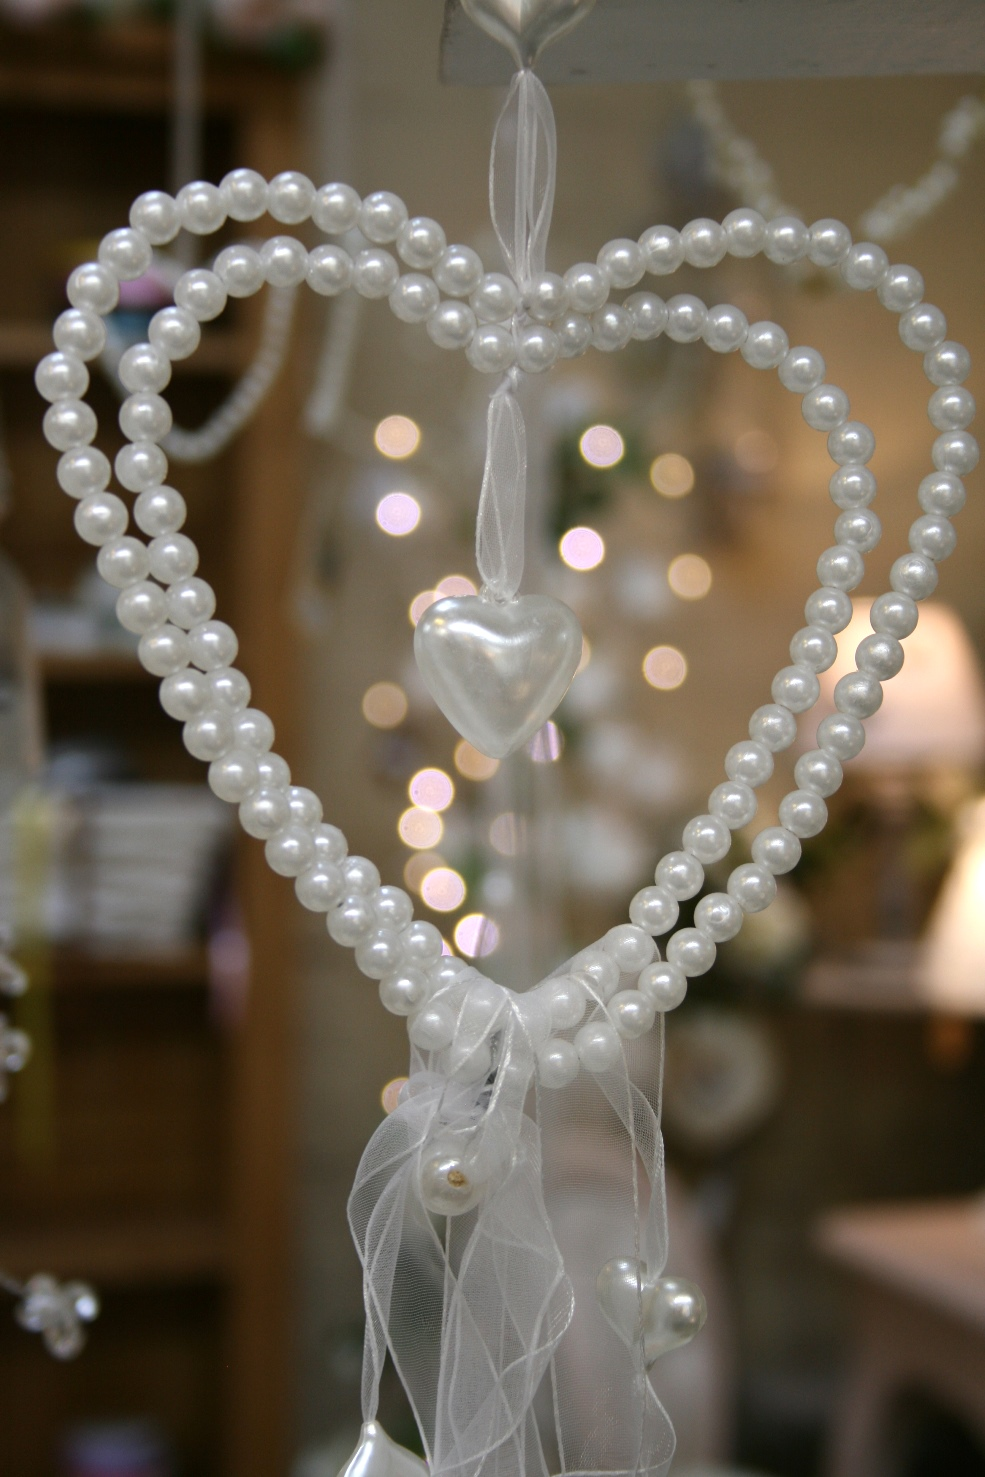 Hanging Heart Decoration - €7.00